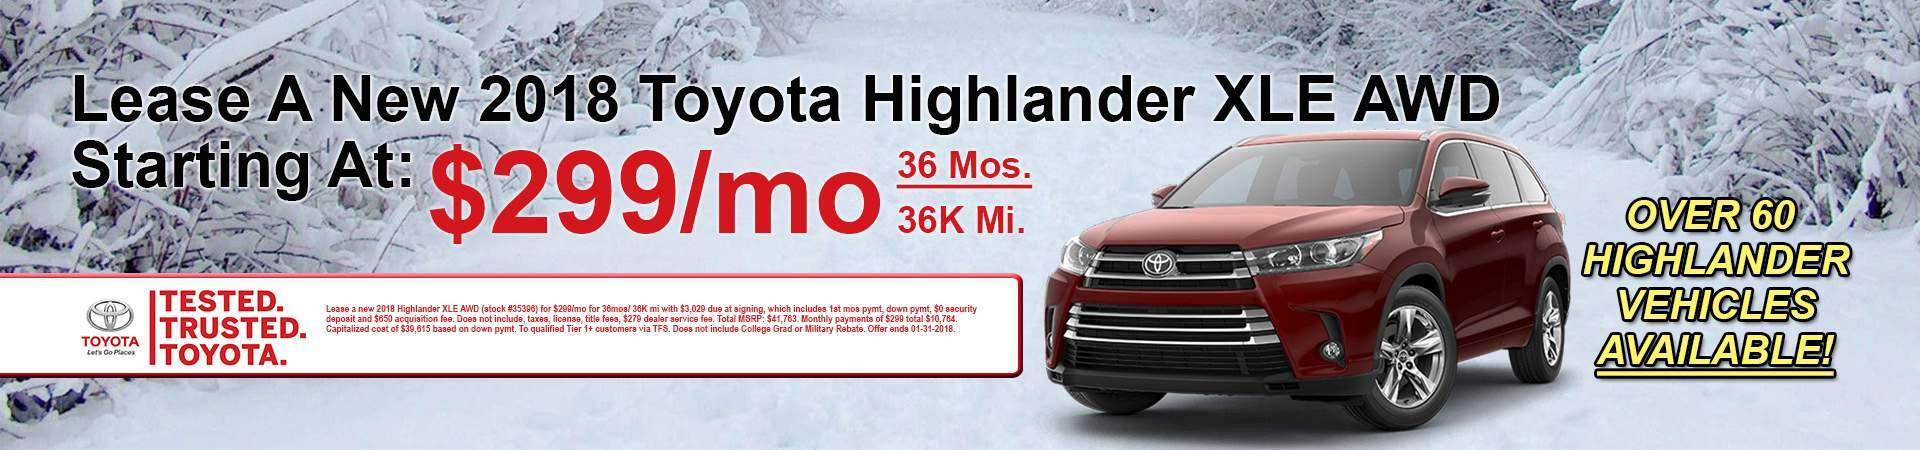 January 2018 Highlander Deals